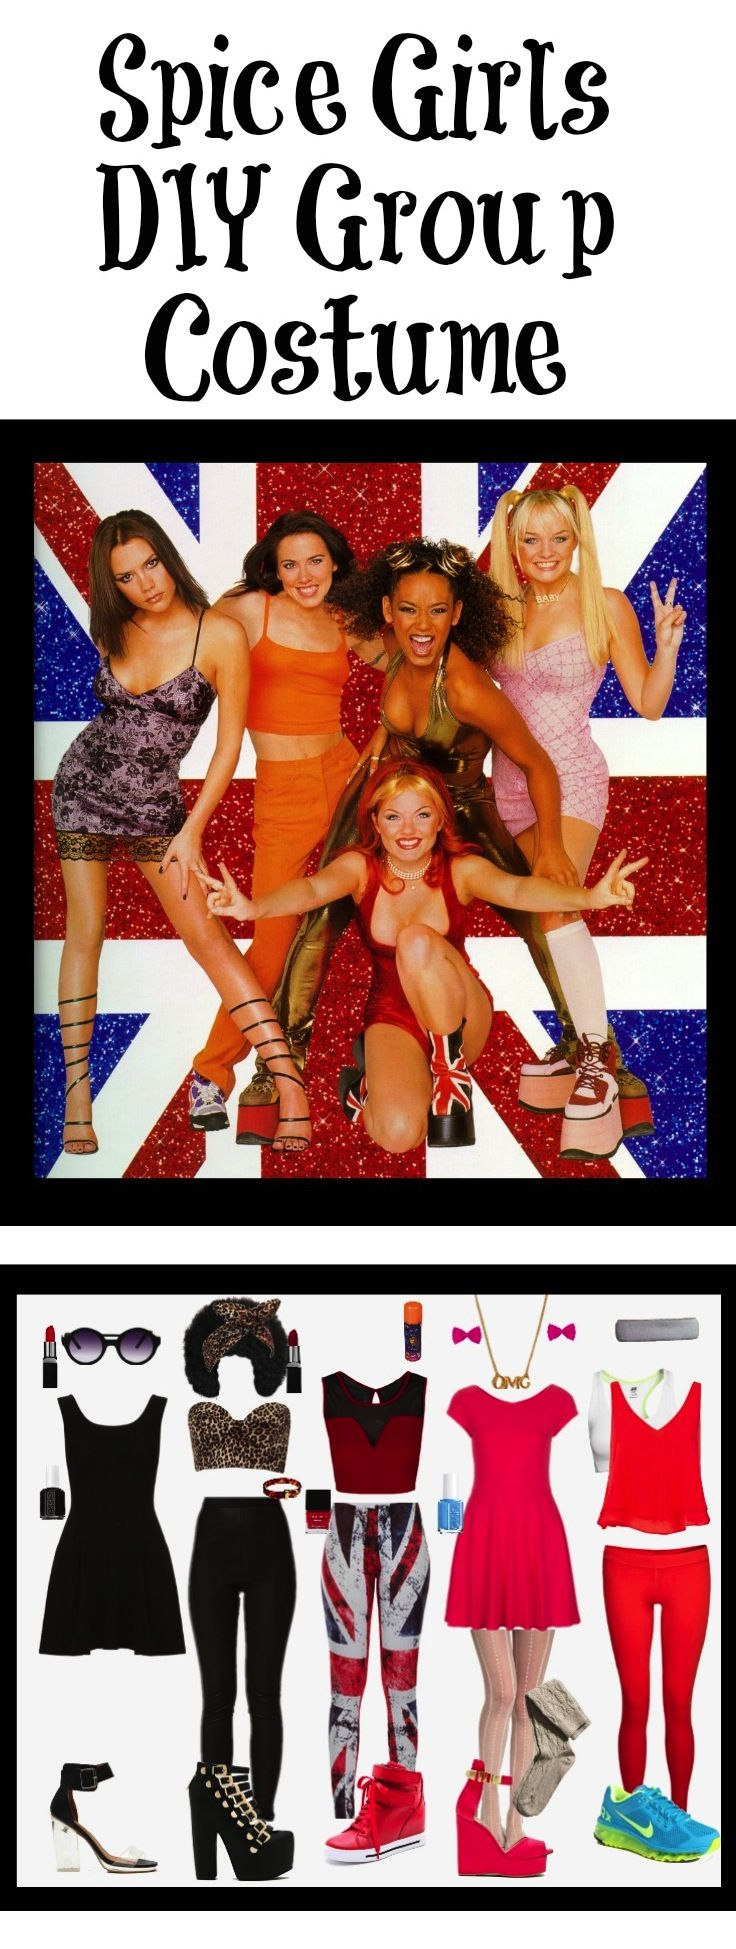 DIY Spice Girls Costume for Halloween. Style DIY costumes with this super fun…